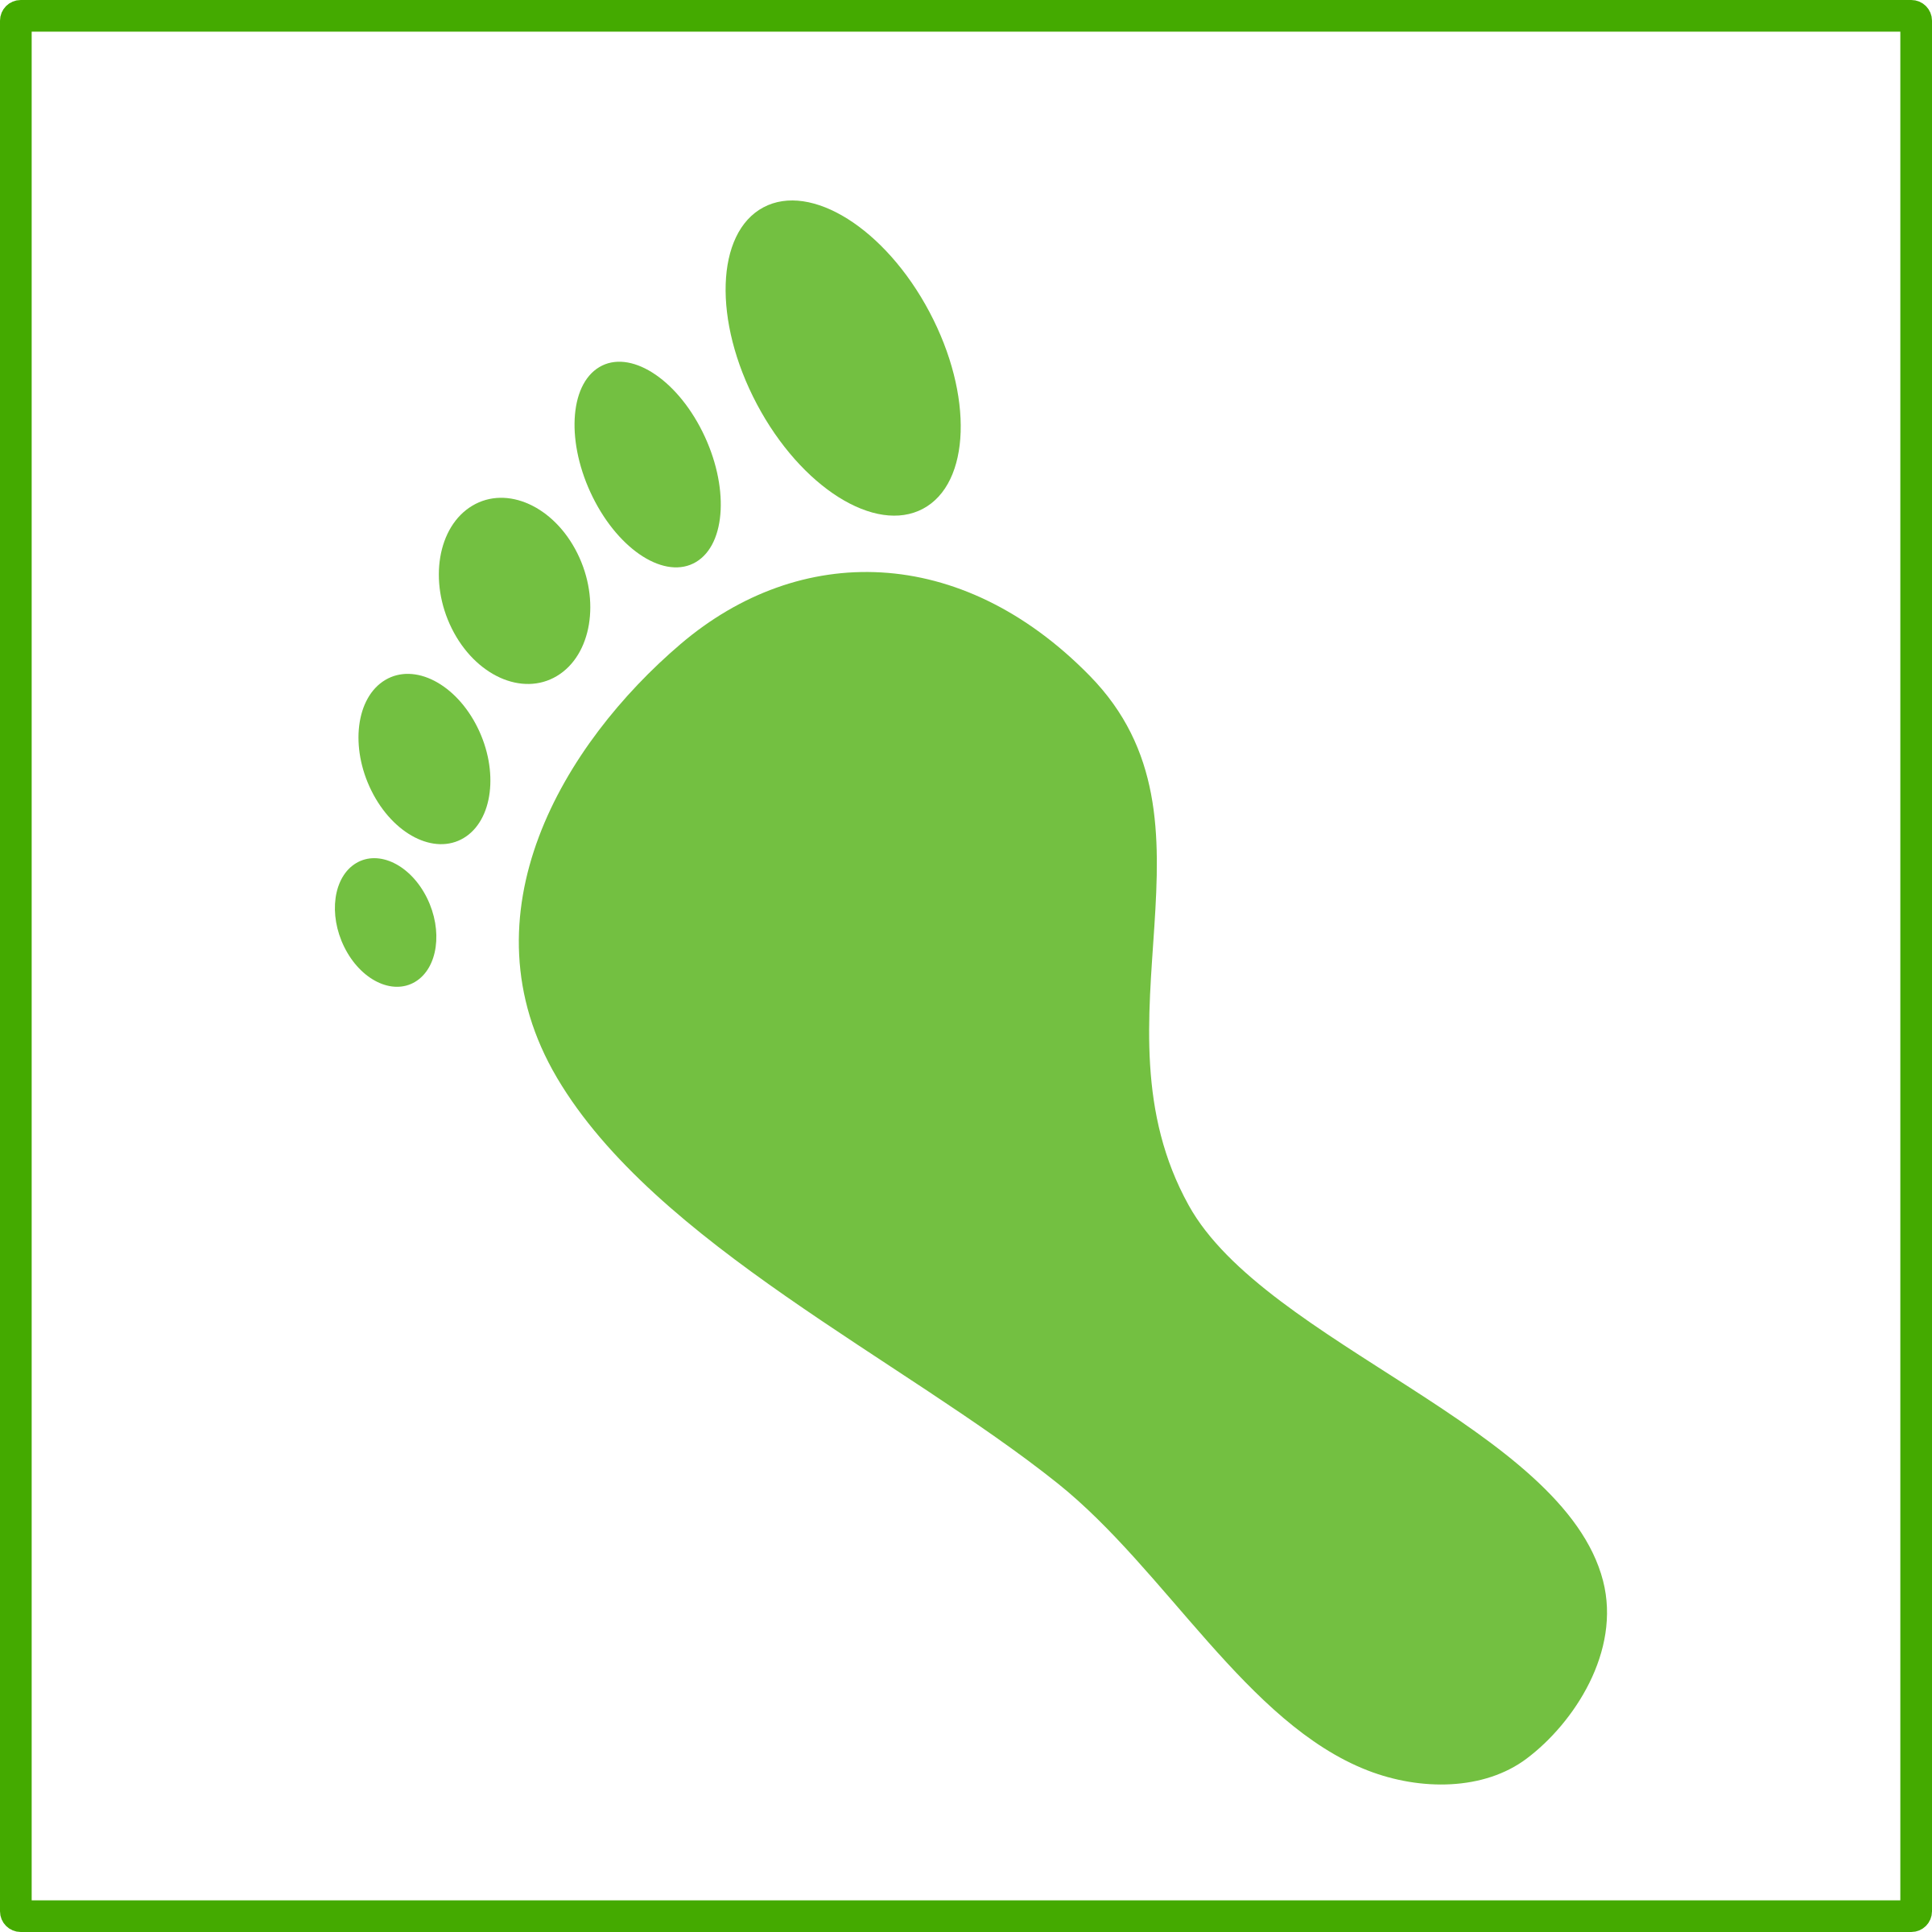 Footprint clipart icon By footprint icon eco eco